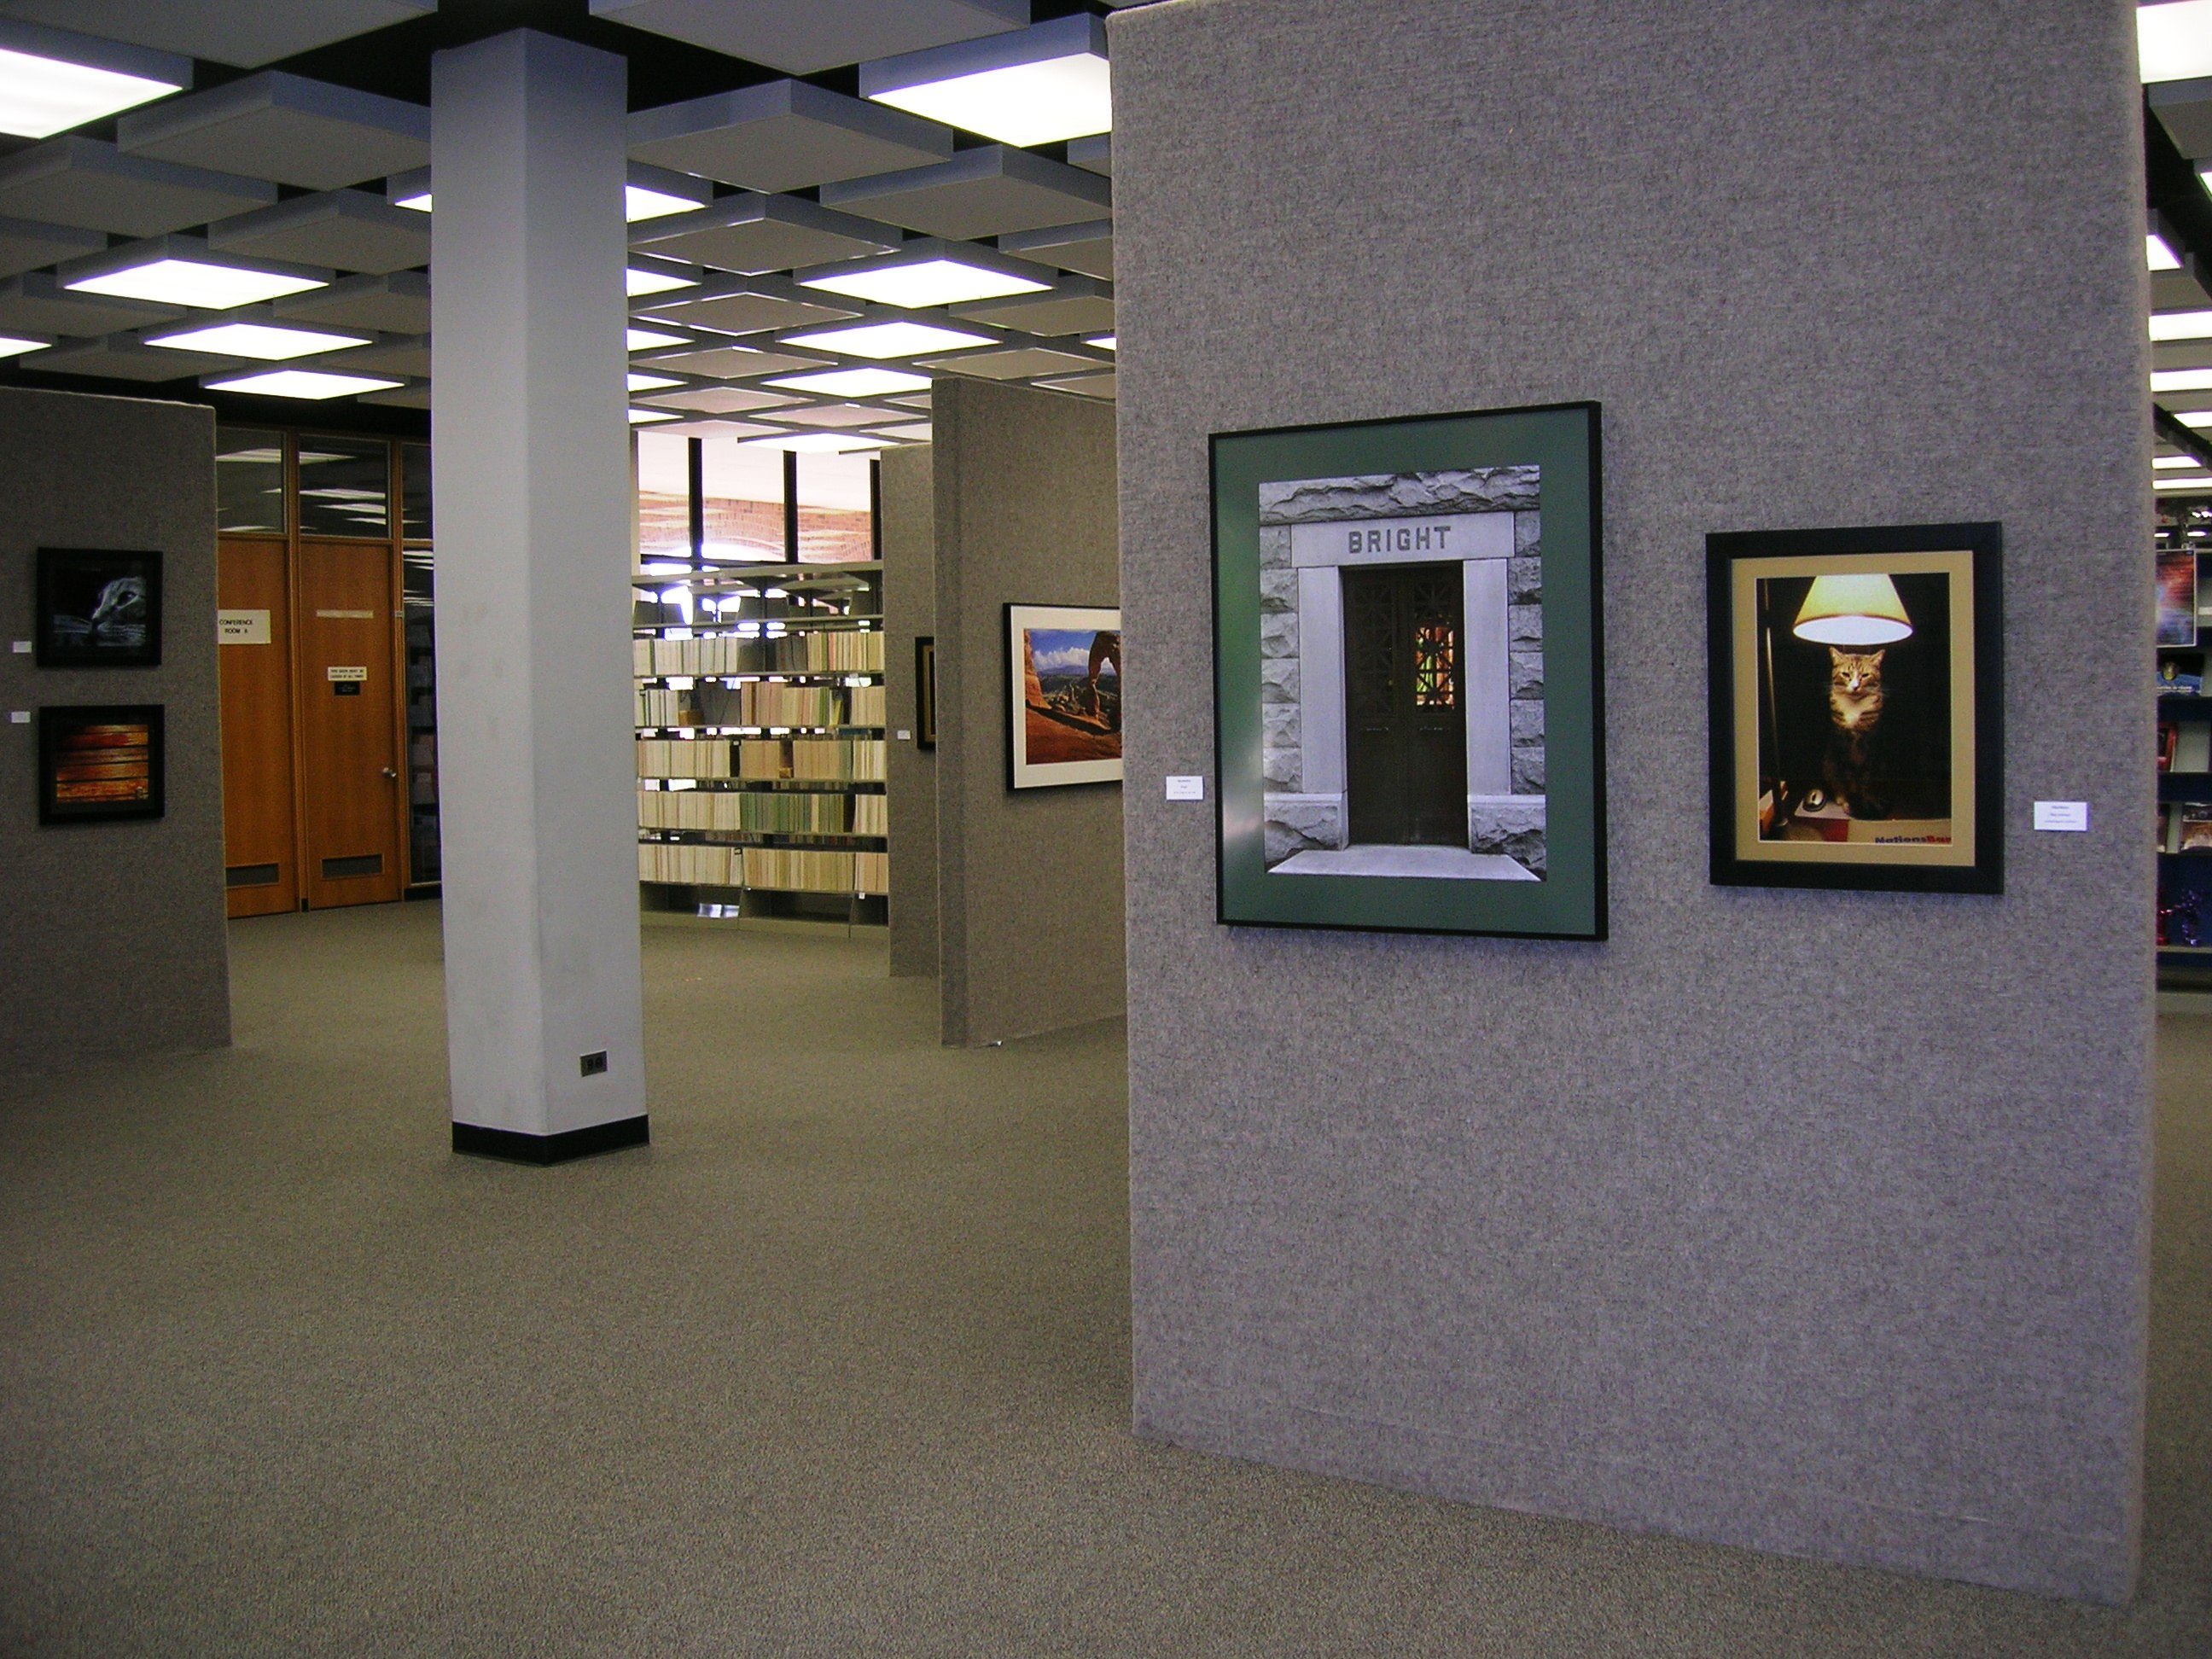 Art Exhibit area